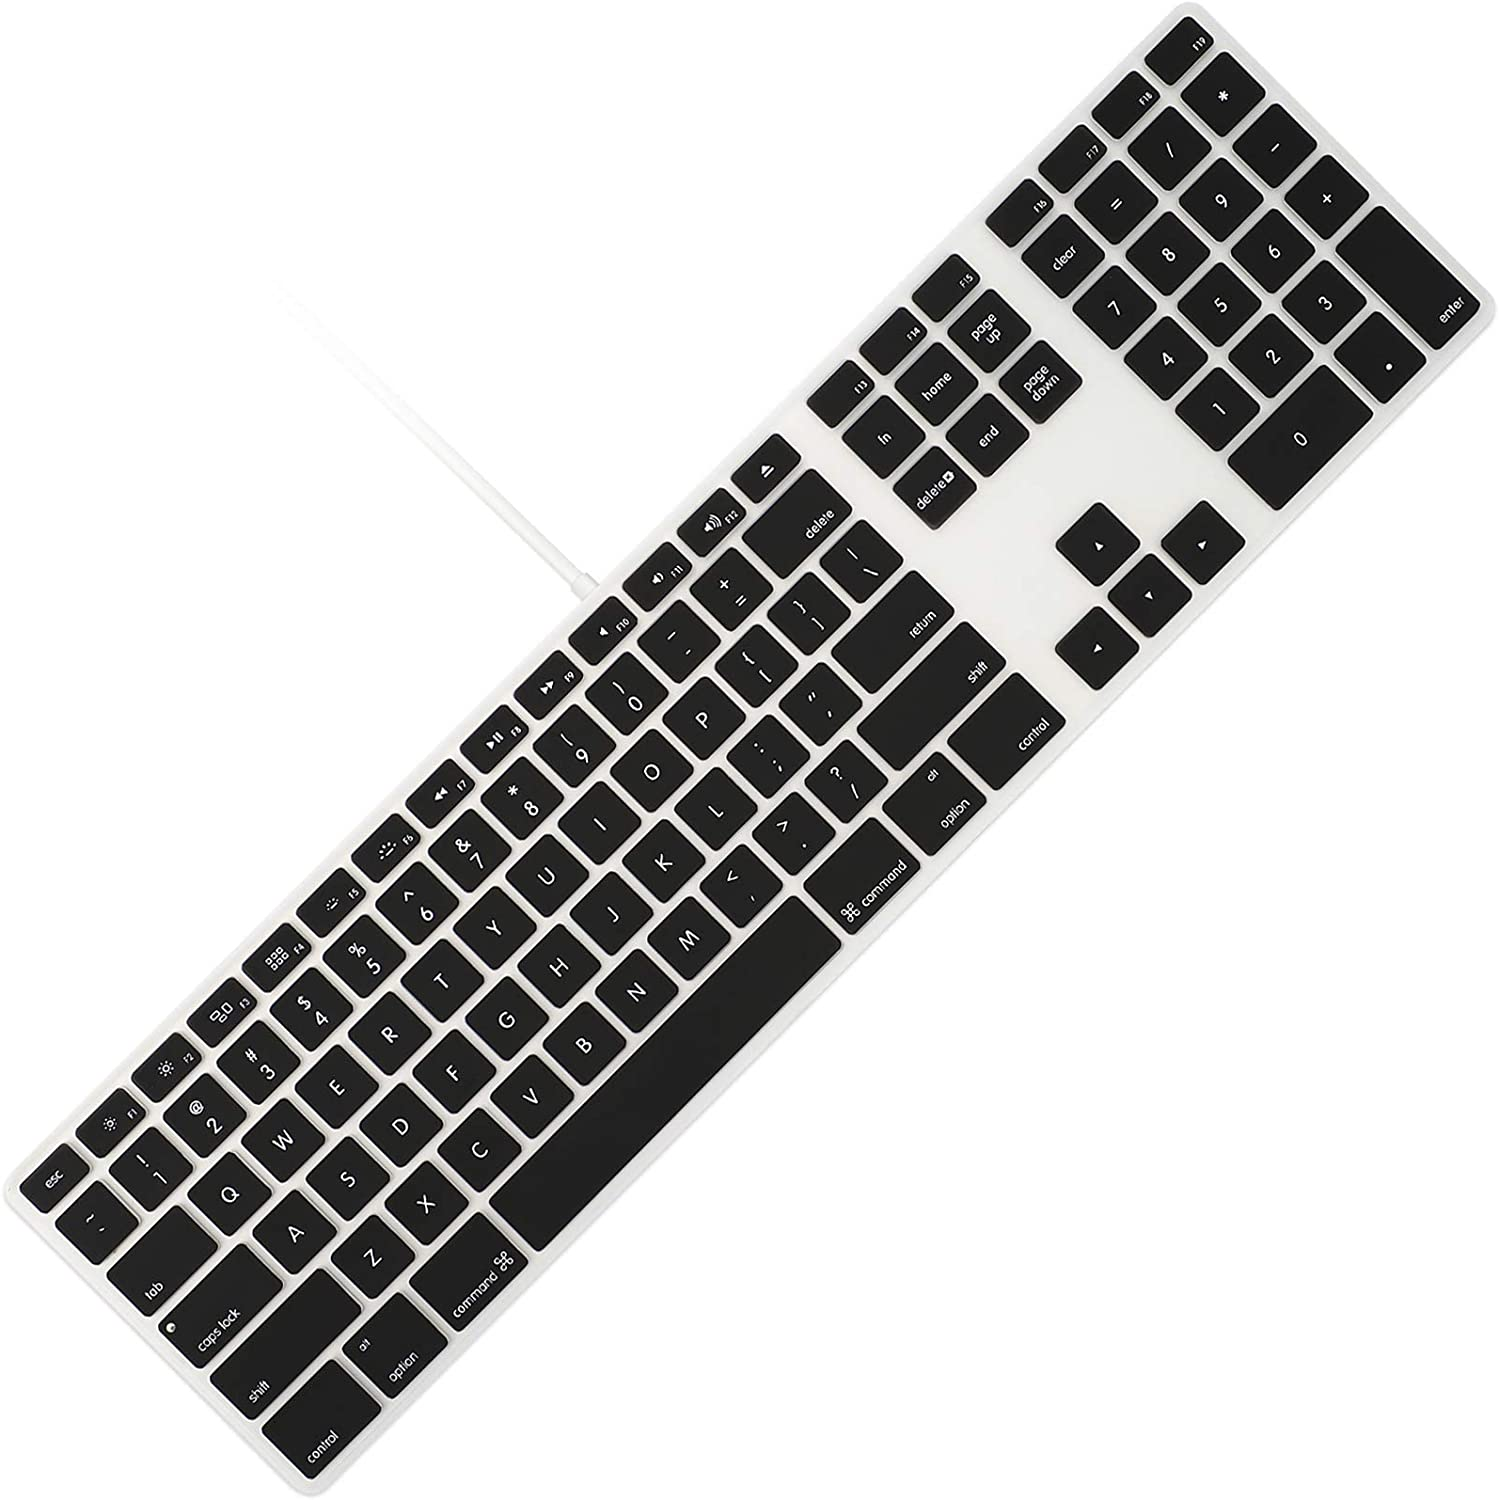 Allinside Black Keyboard Cover for iMac Wired USB Keyboard A1243 MB110LL/B